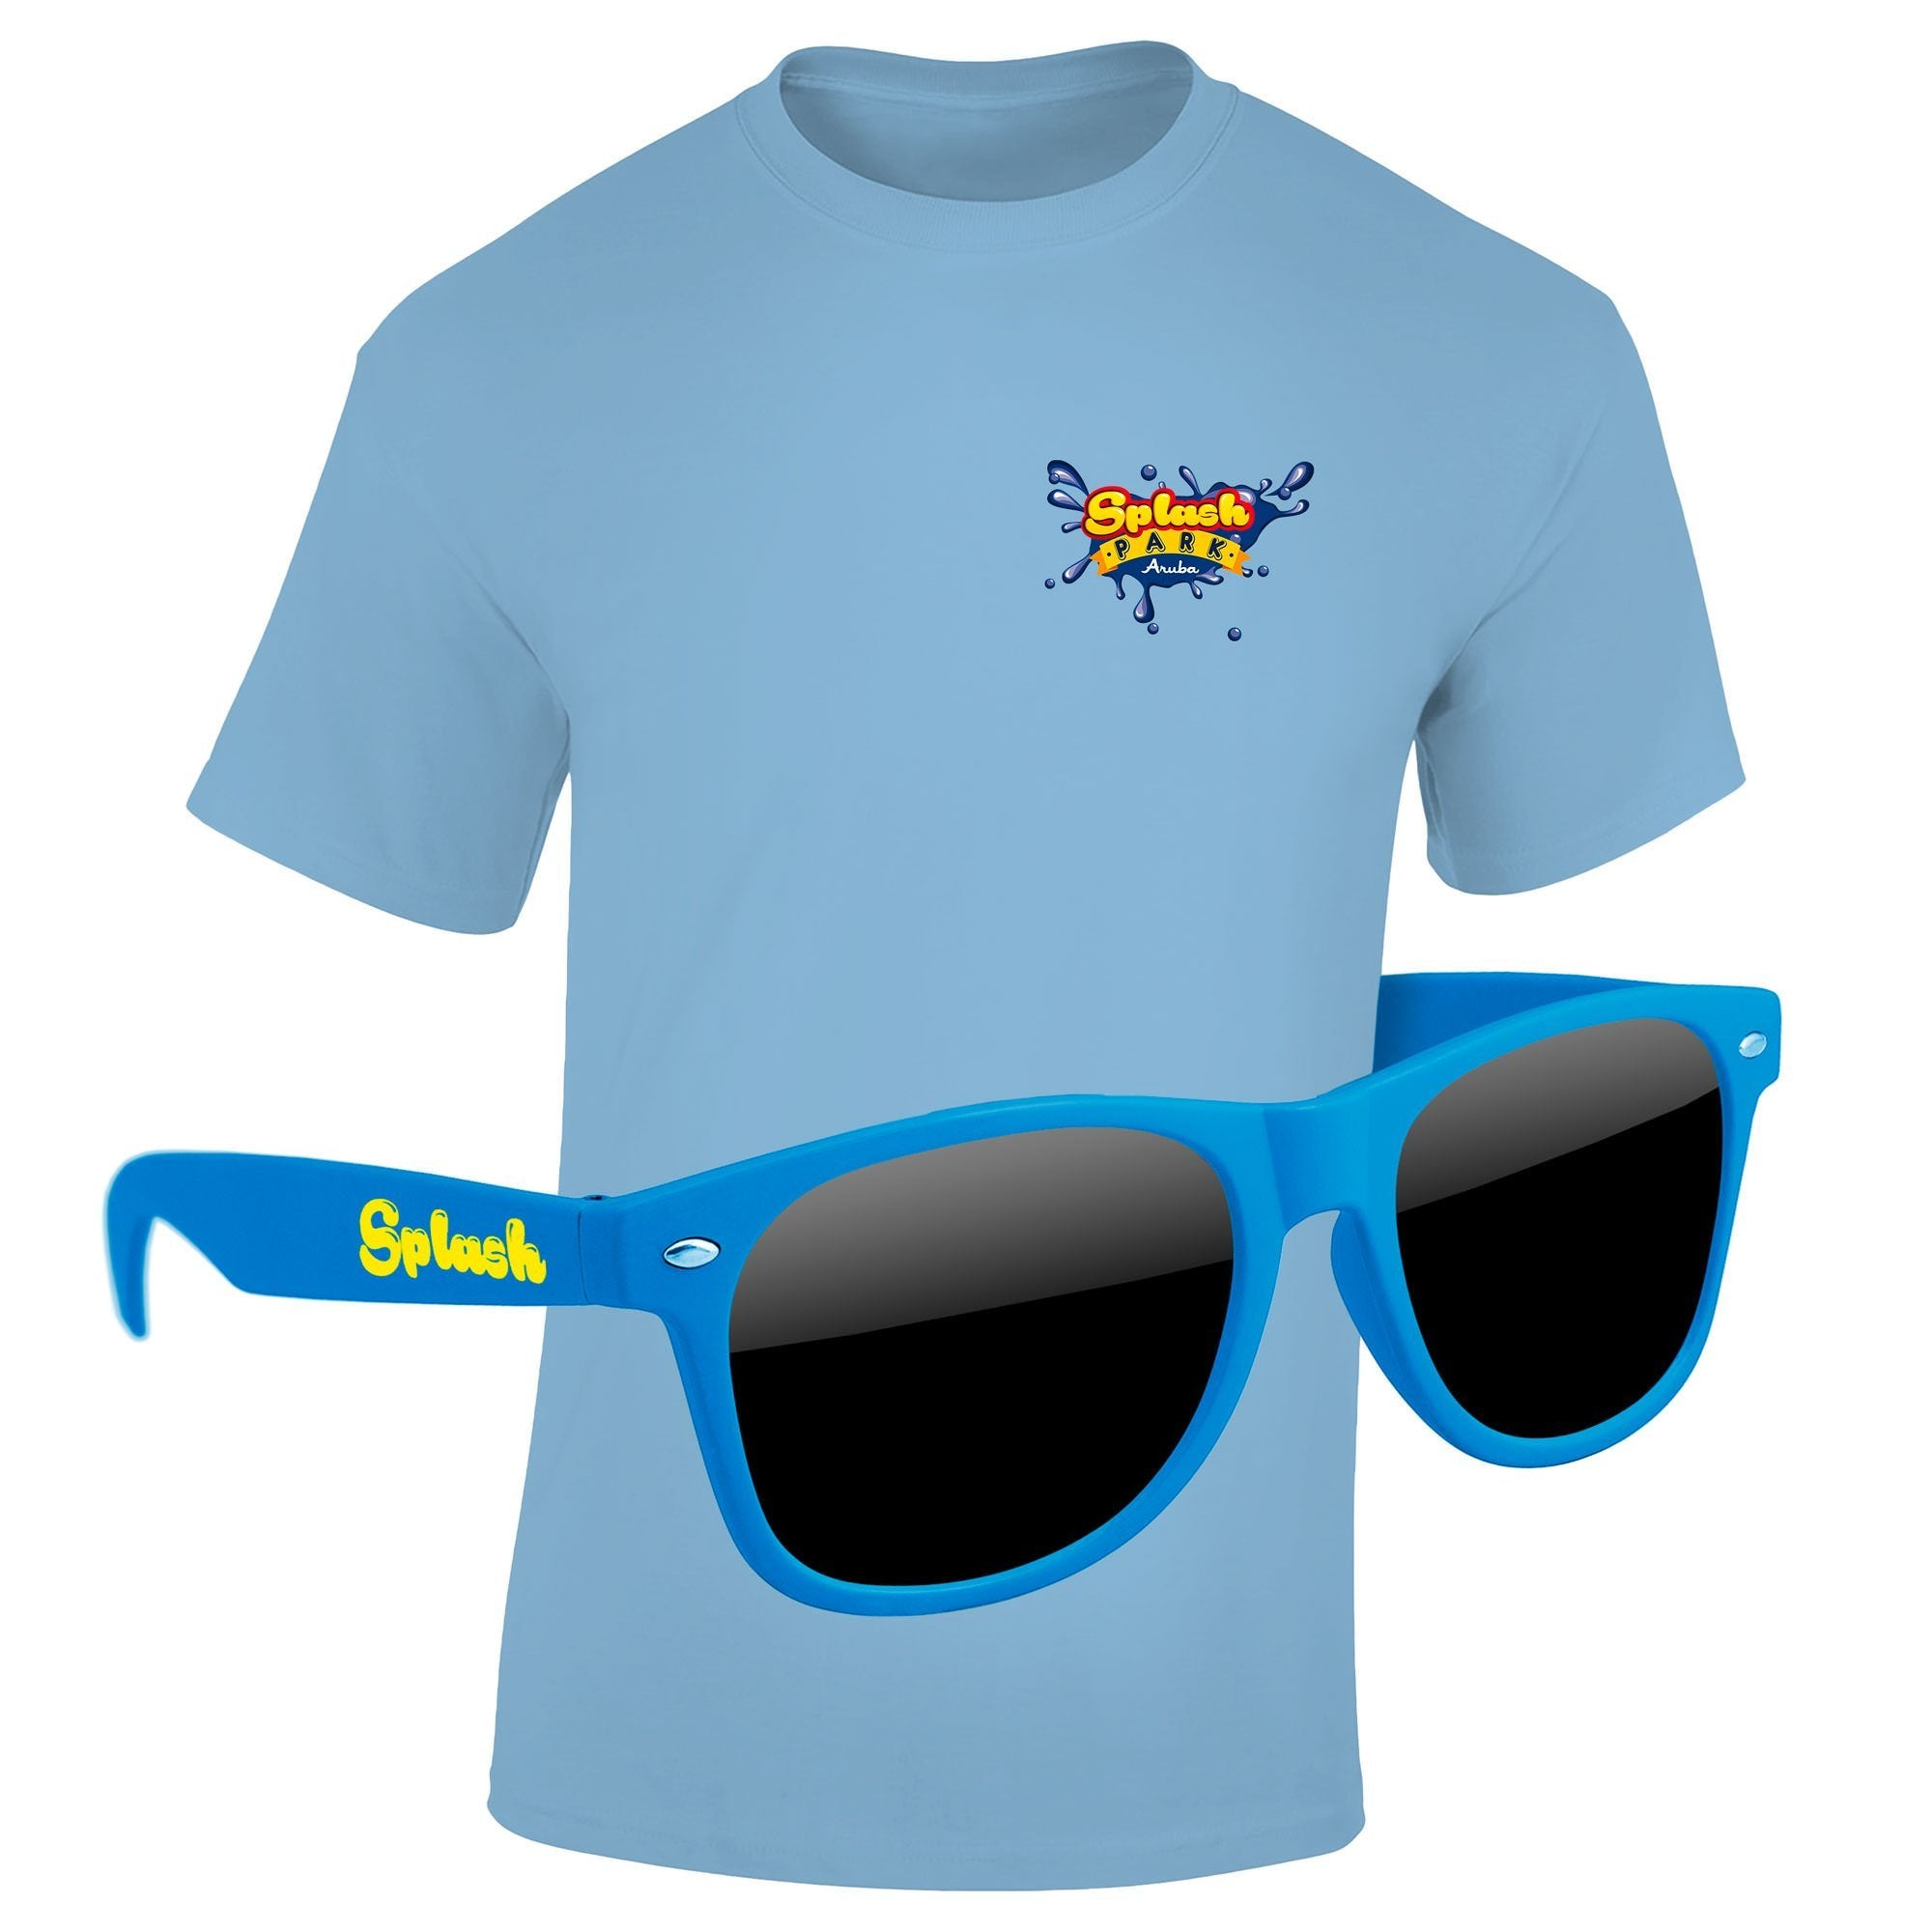 "T-Shirt & Sunglasses Kit - Full-Color On Color/Black T-Shirt (Up To 5"" x 5"")"